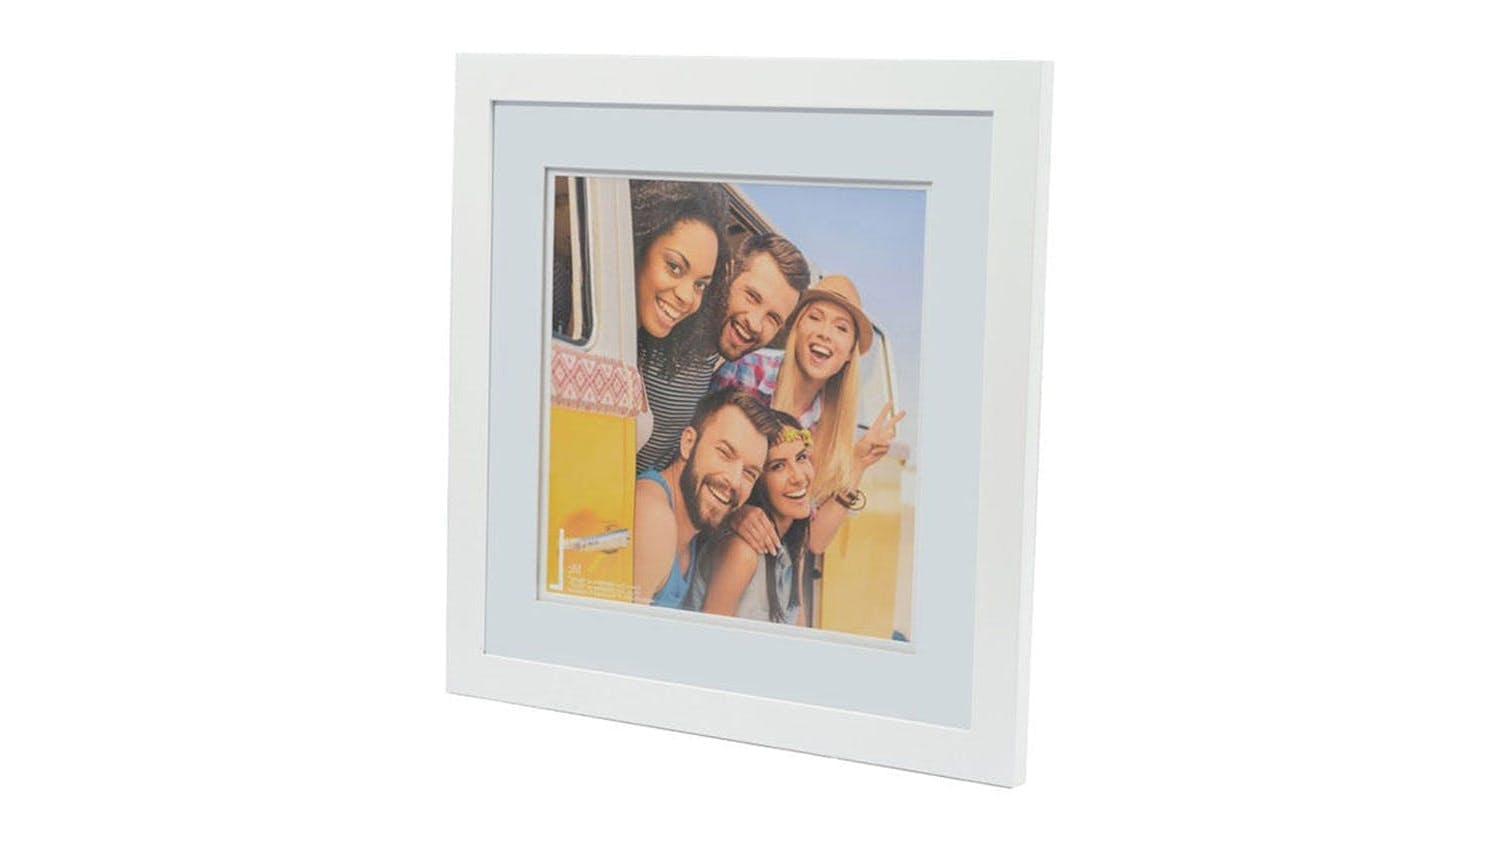 UR1 Life 16x16 Photo Frame with 12x12 Opening - White